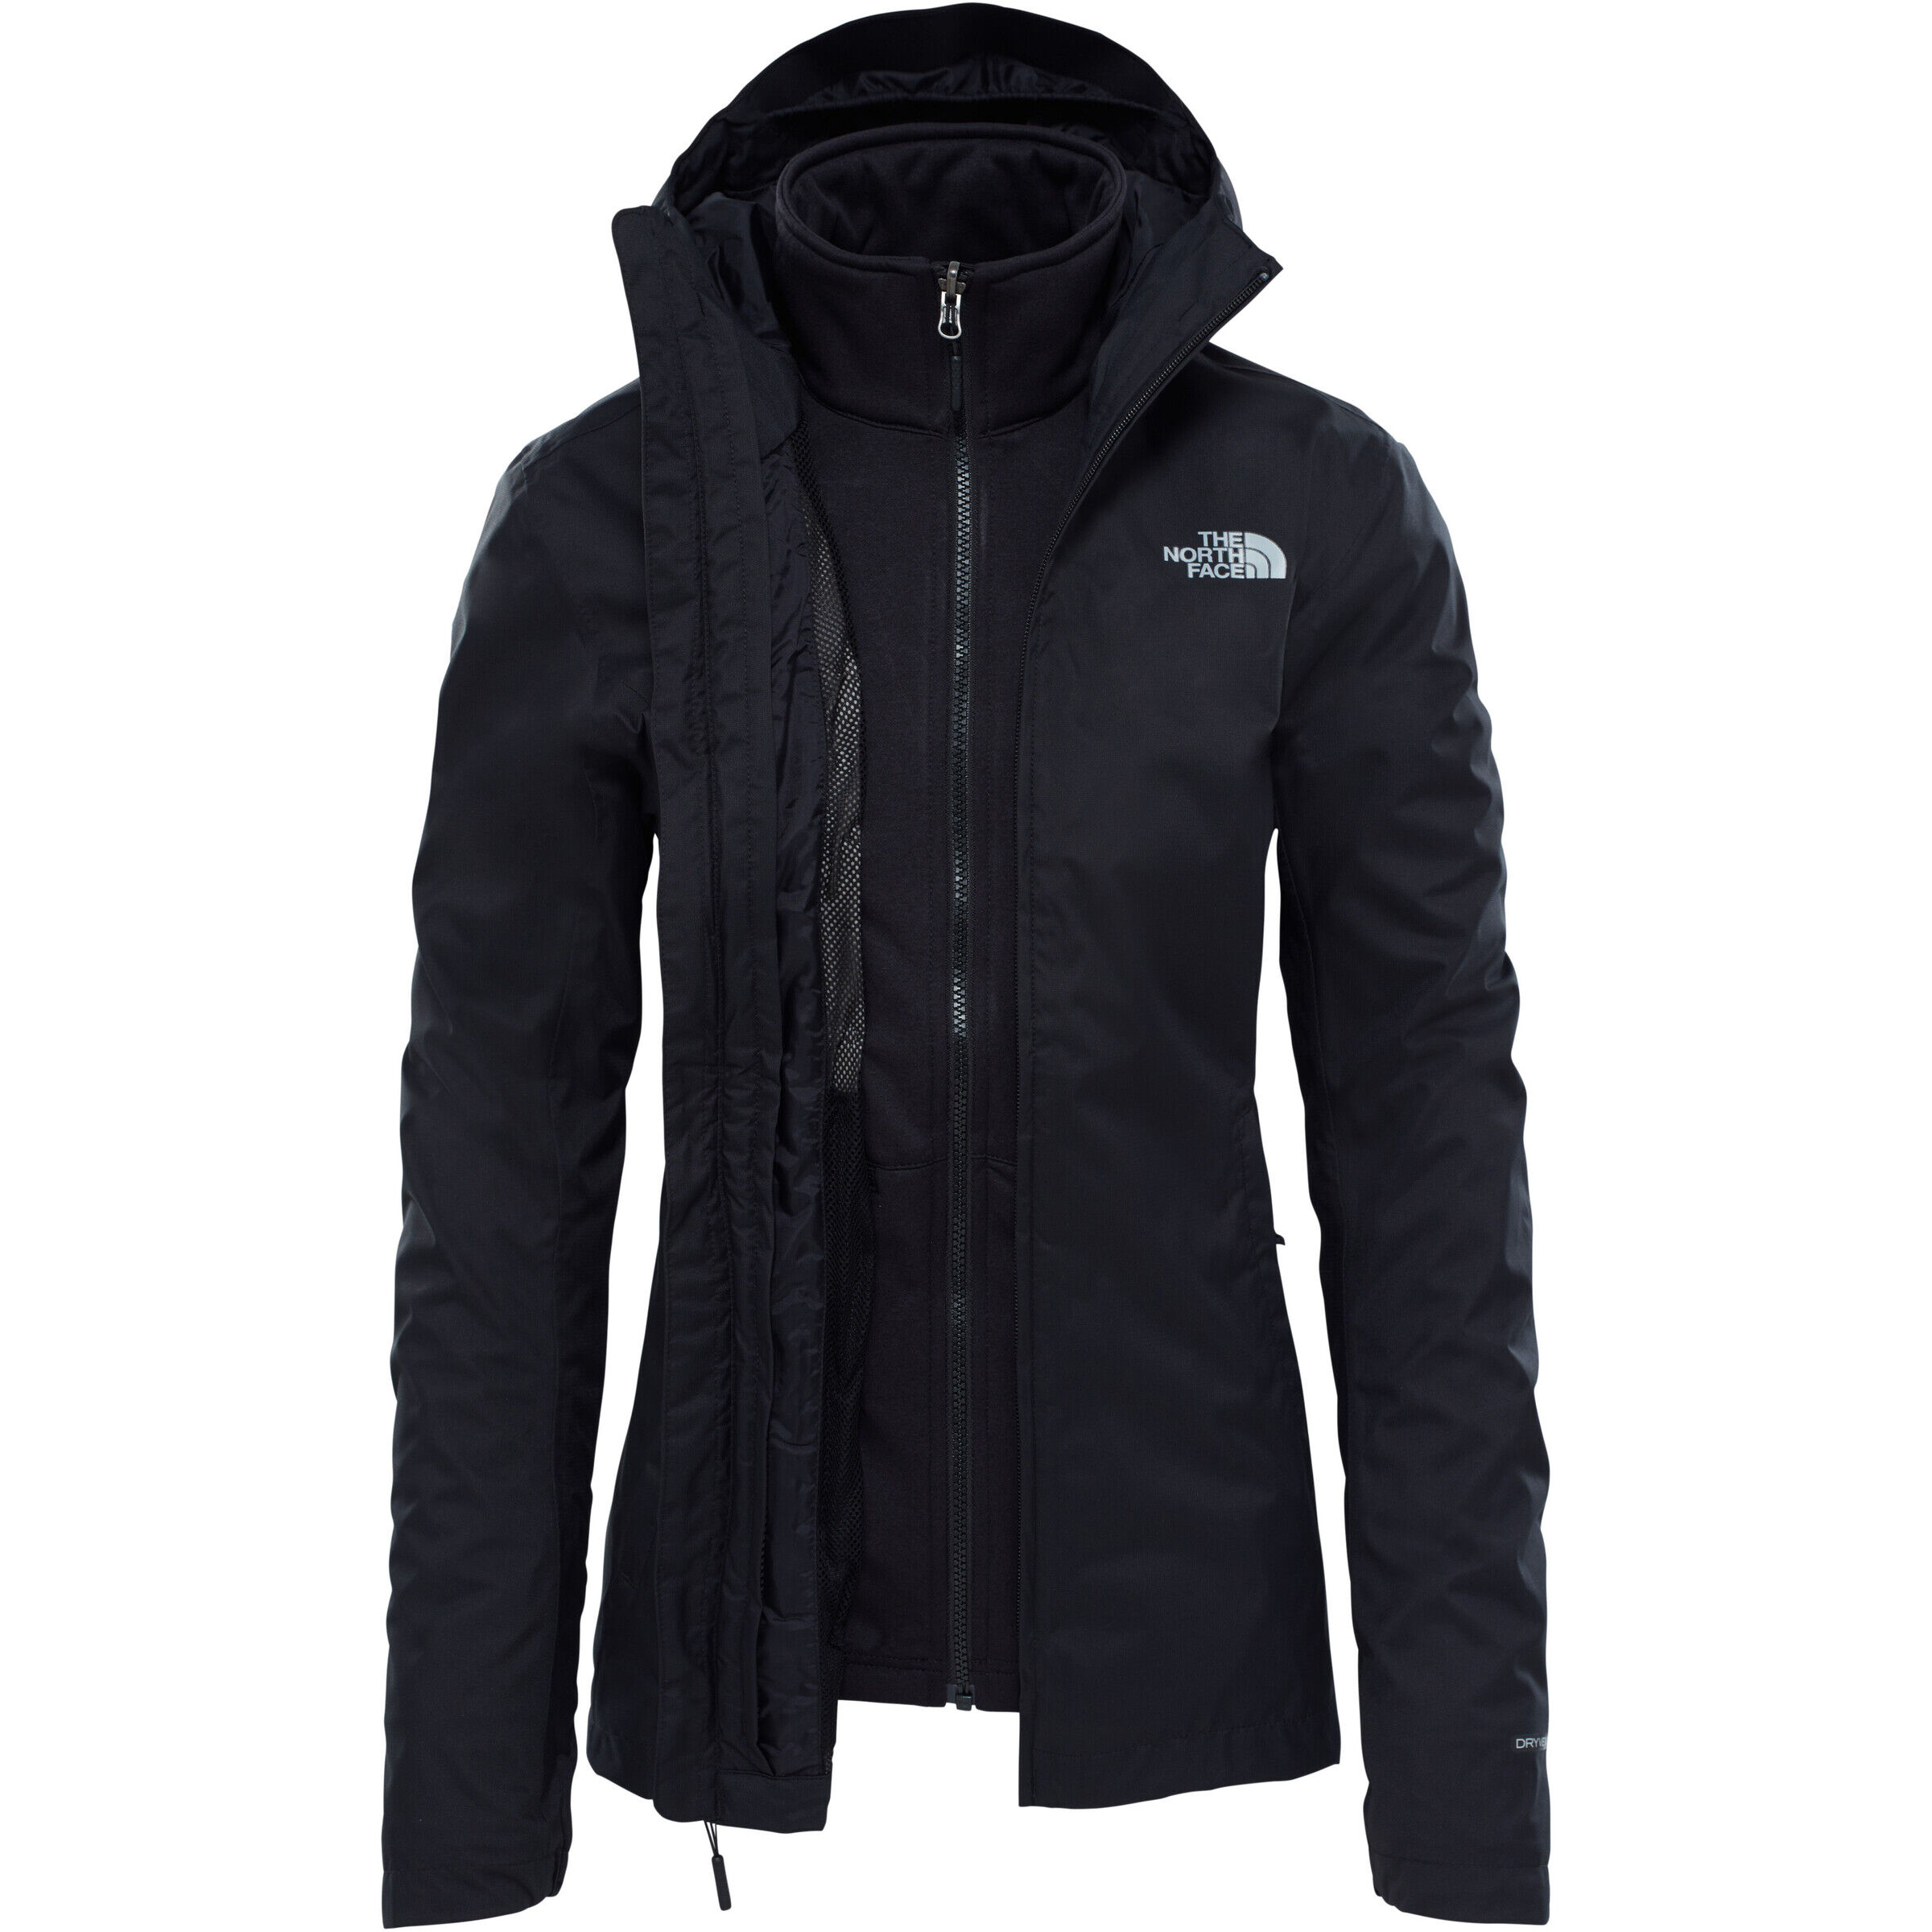 3 in 1 jacke damen north face